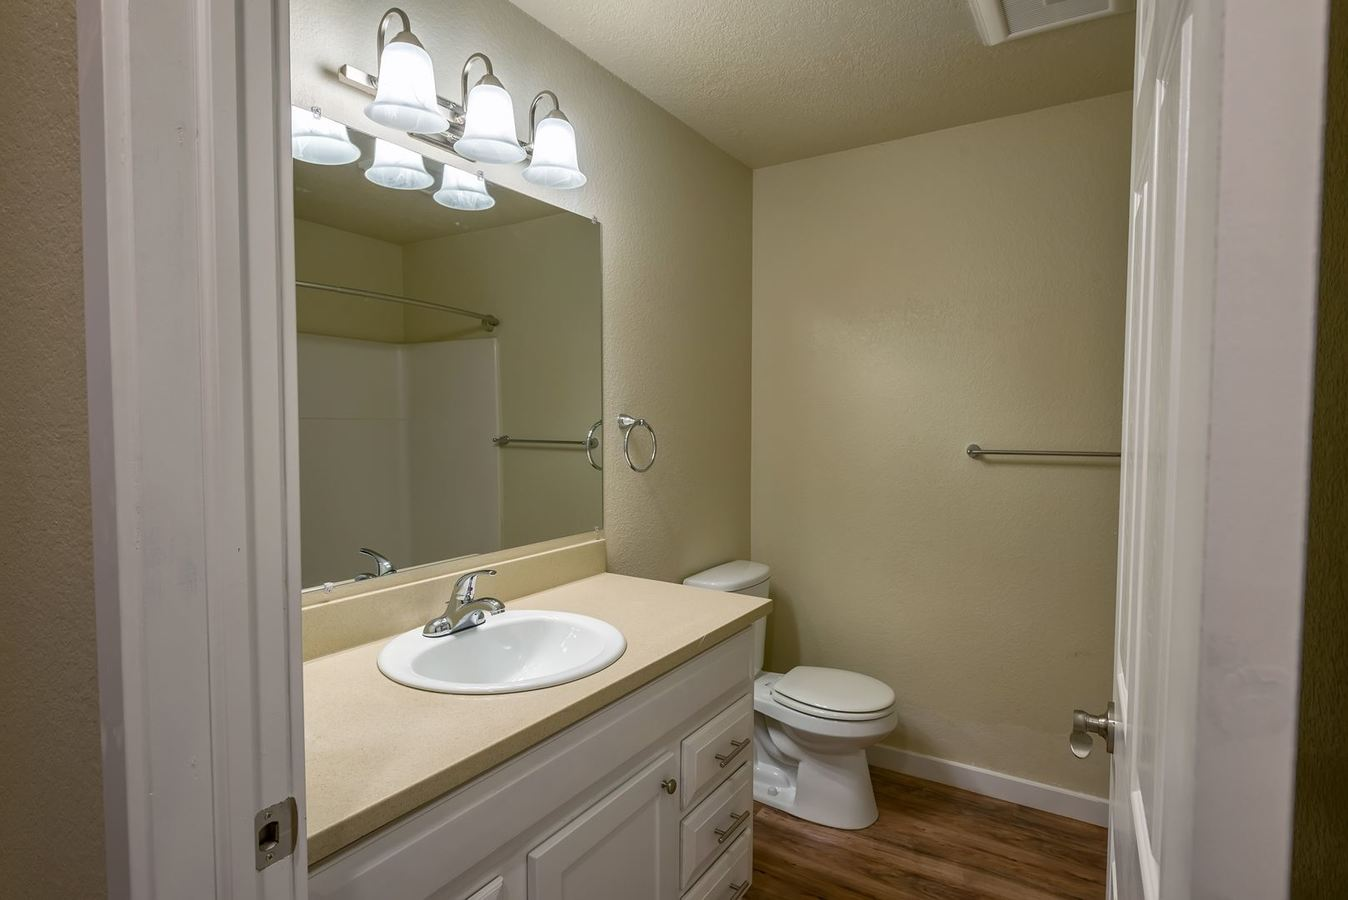 2 Bedrooms 1 Bathroom Apartment for rent at 12526 Meridian Avenue South in Everett, WA